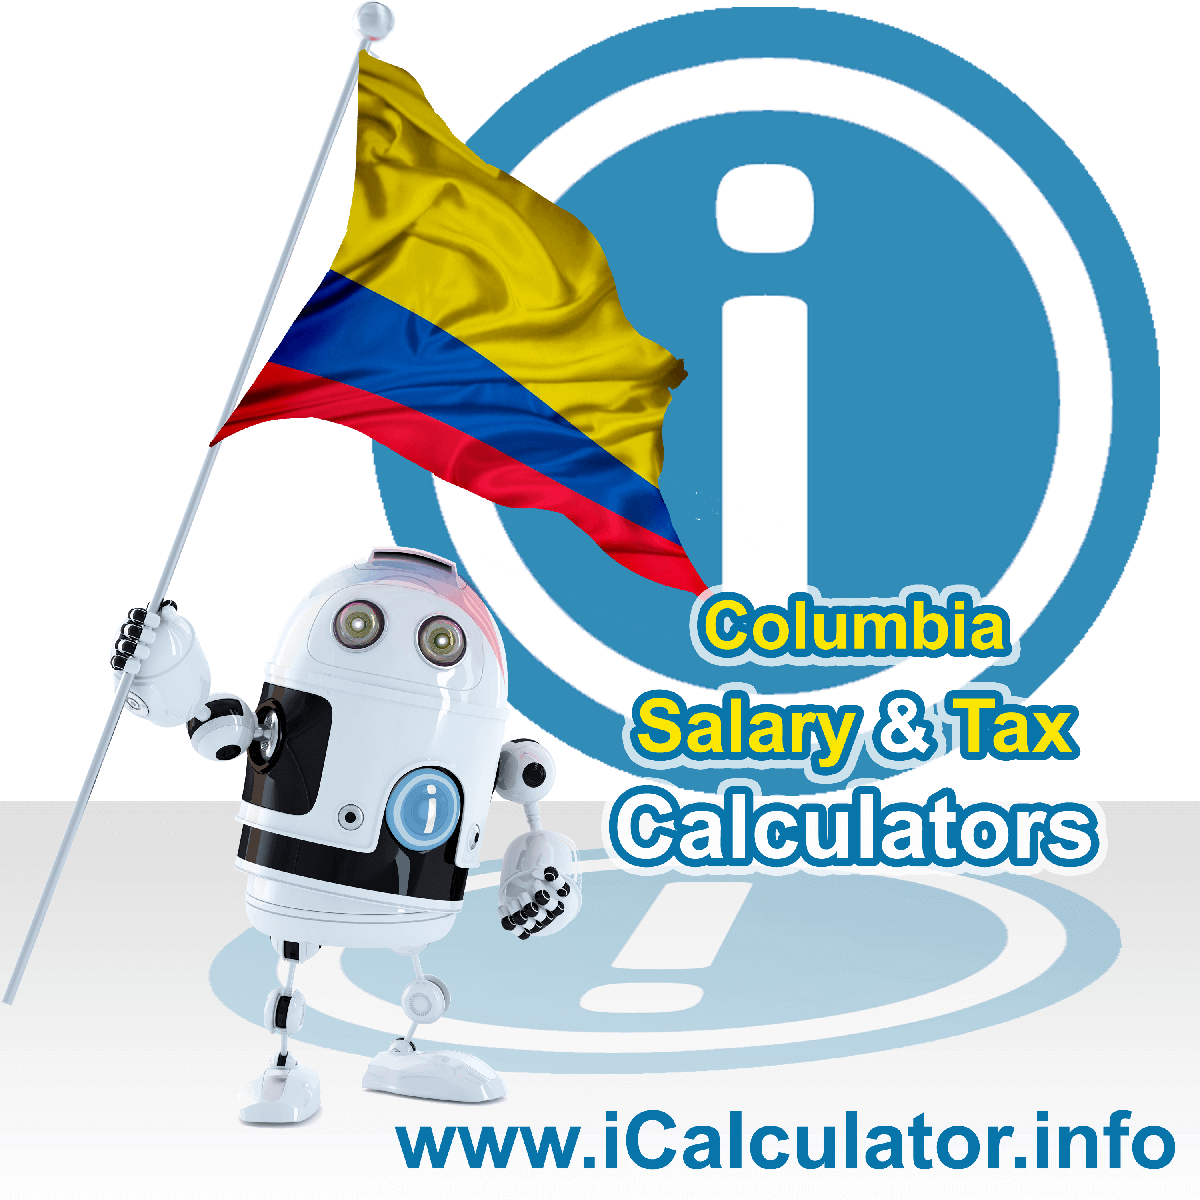 Colombia Tax Calculator. This image shows the Colombia flag and information relating to the tax formula for the Colombia Salary Calculator